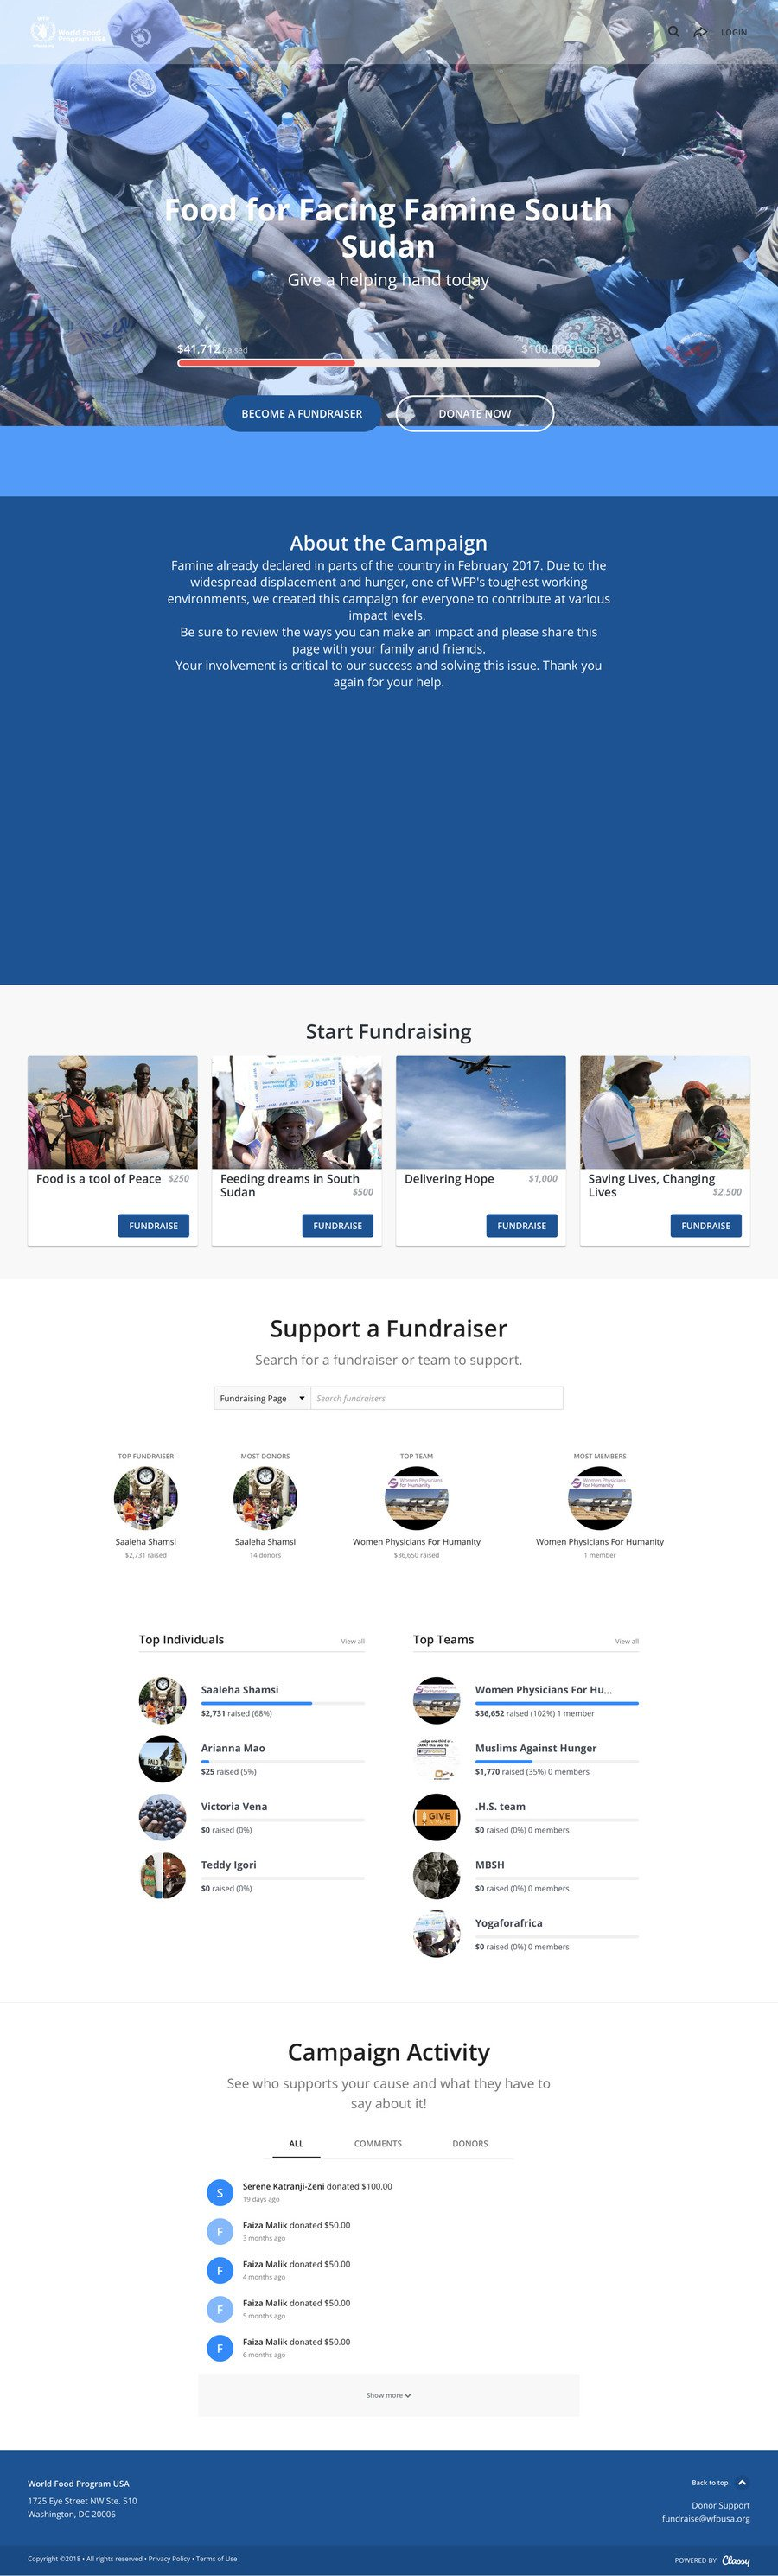 Fighting Famine in South Sudan - Food Relief , a Peer-to-Peer campaign on Classy.org